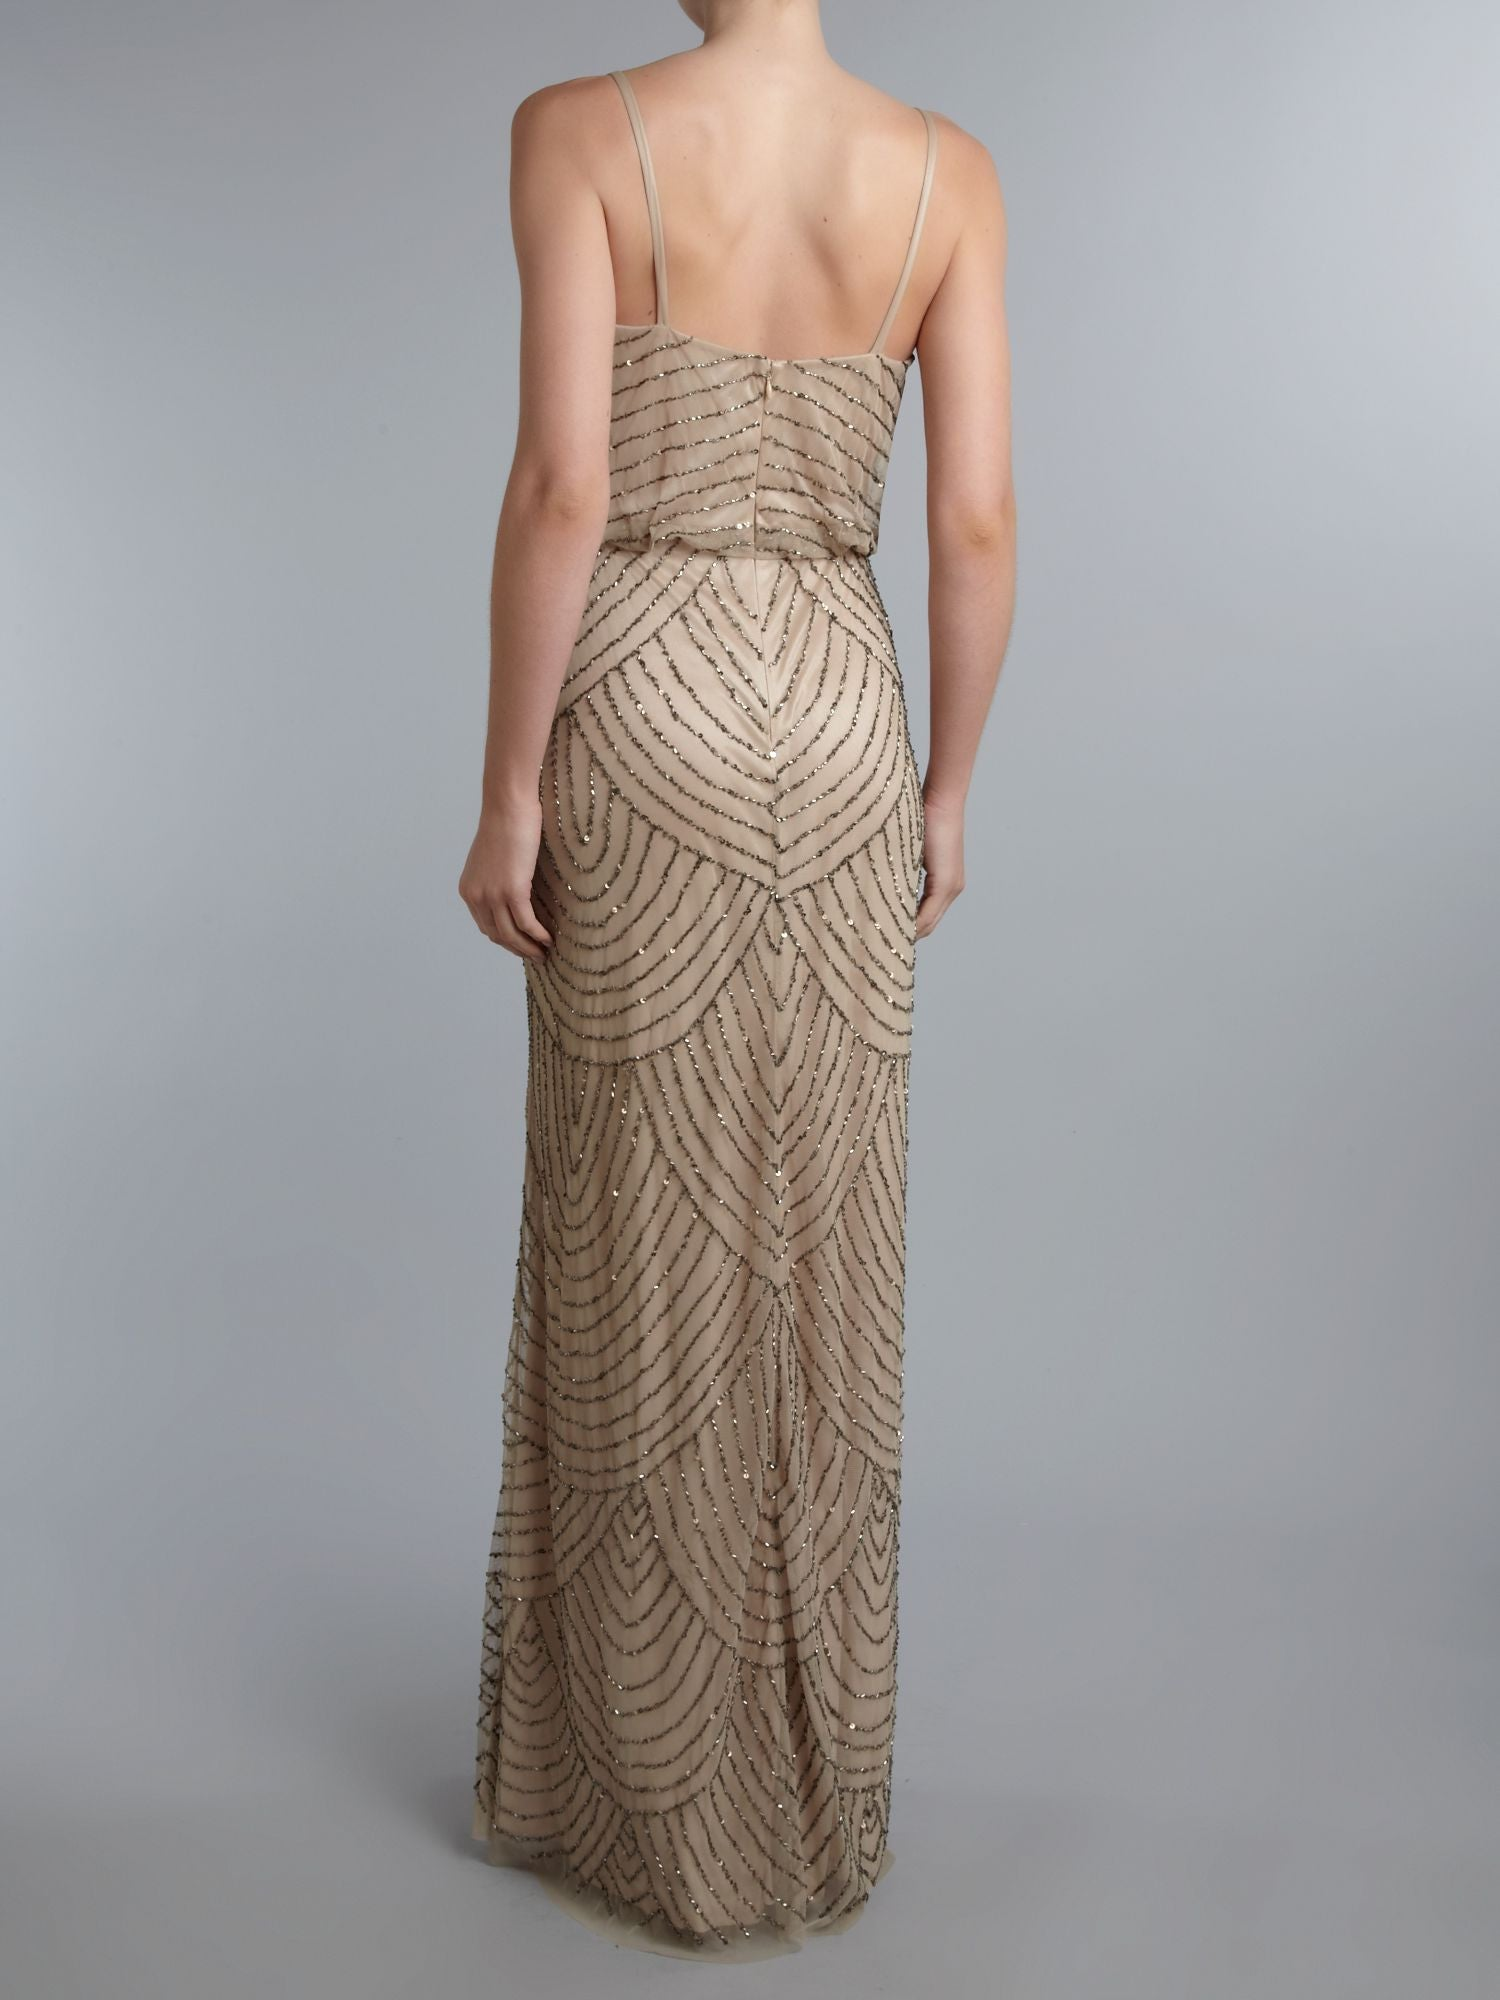 27d6ed714e0d Adrianna Papell Art Deco Beaded Blouson Gown - Taupe  Pink - Adinas ...